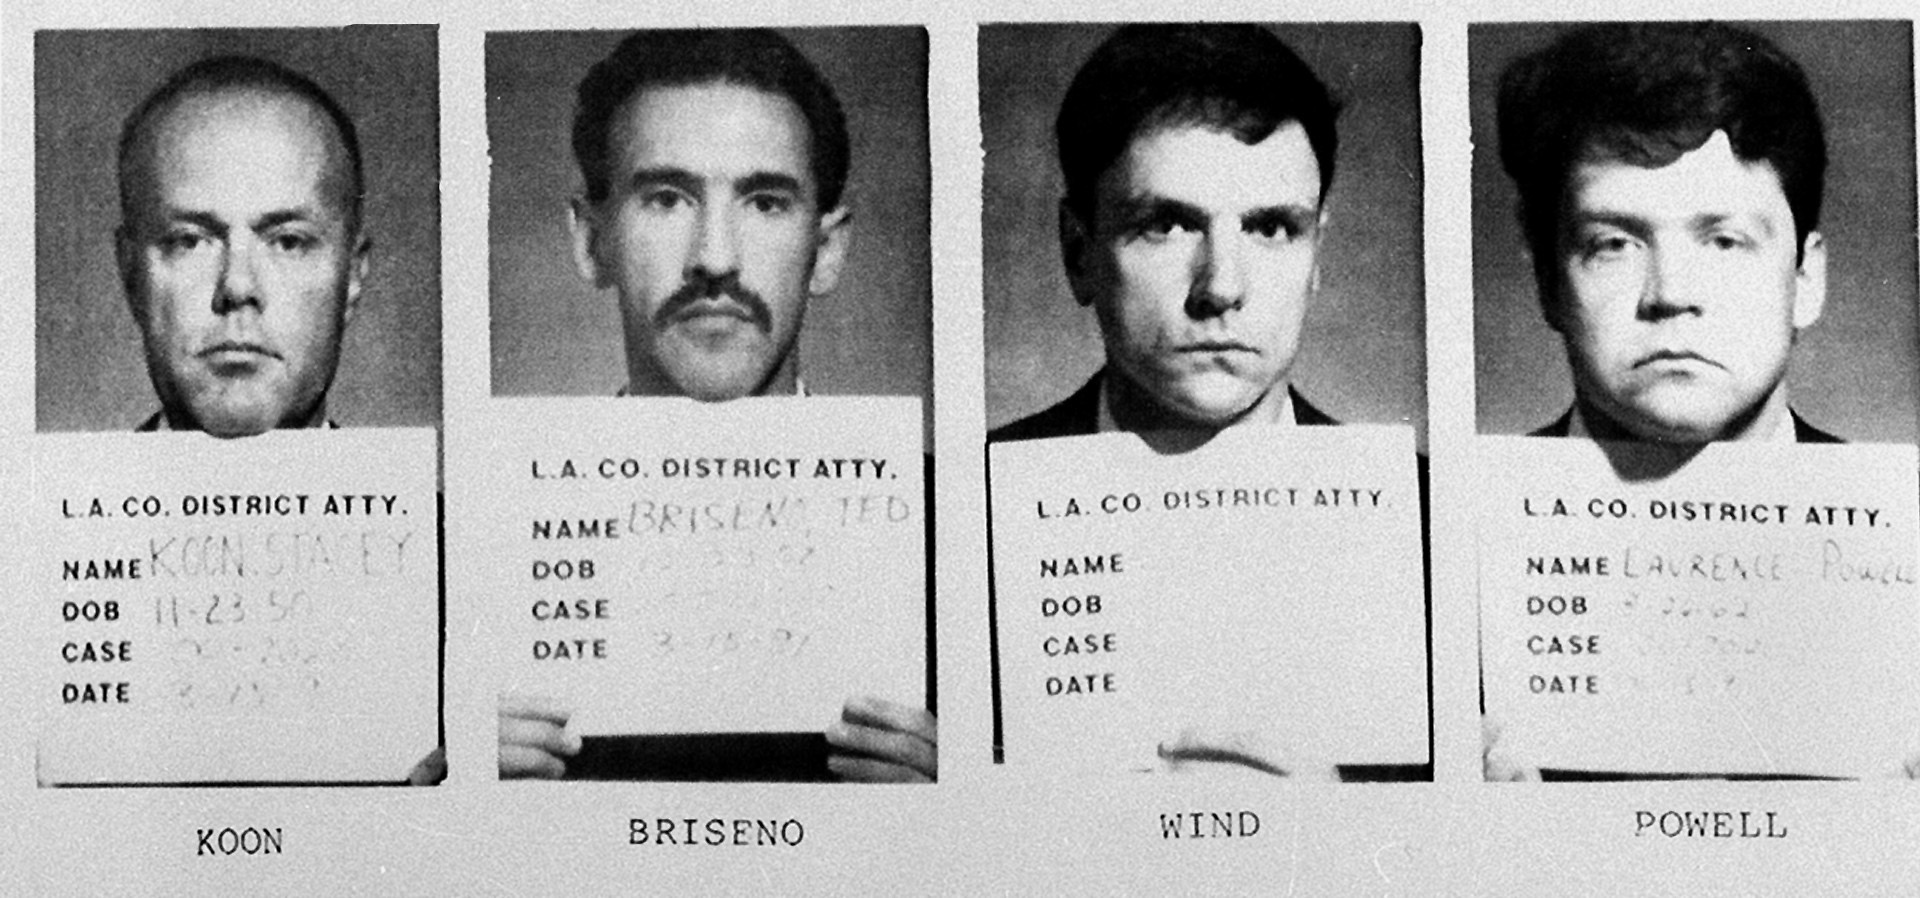 The officers arrested and charged in the beating of Rodney King